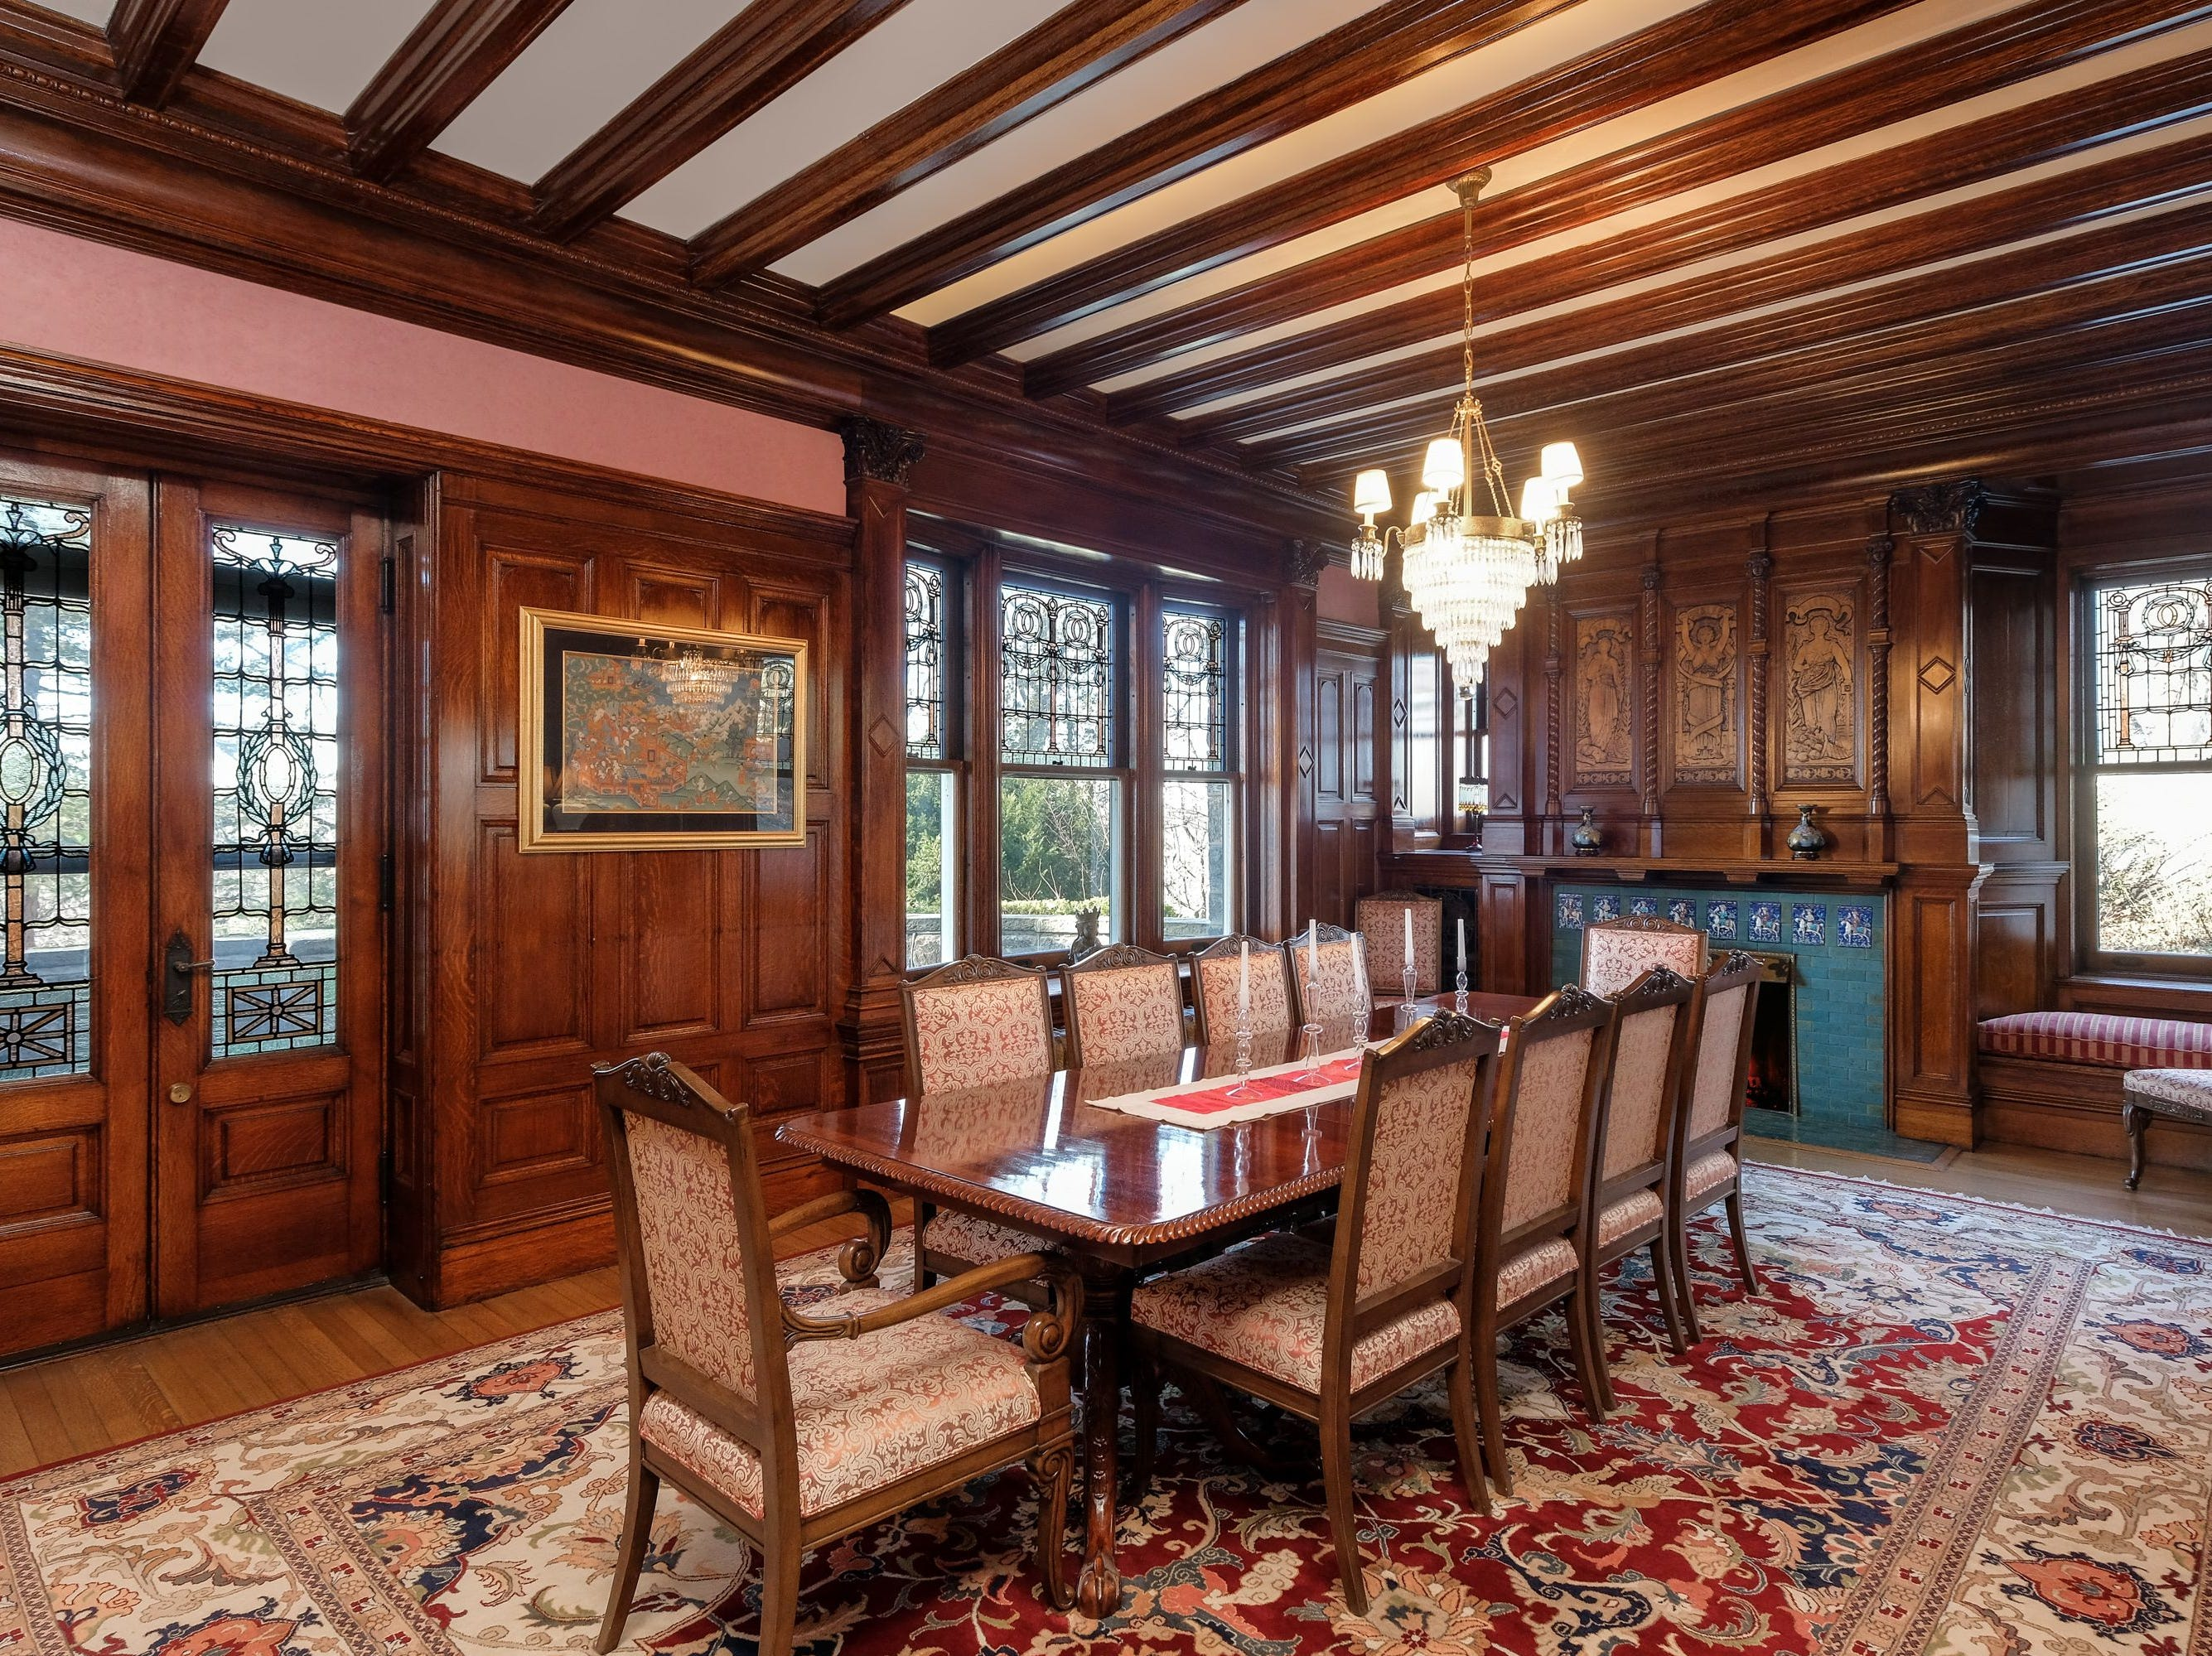 50 Crow's Nest in Bronxville. The 1849 Gothic Revival home retains many original details such as Tiffany stained glass.